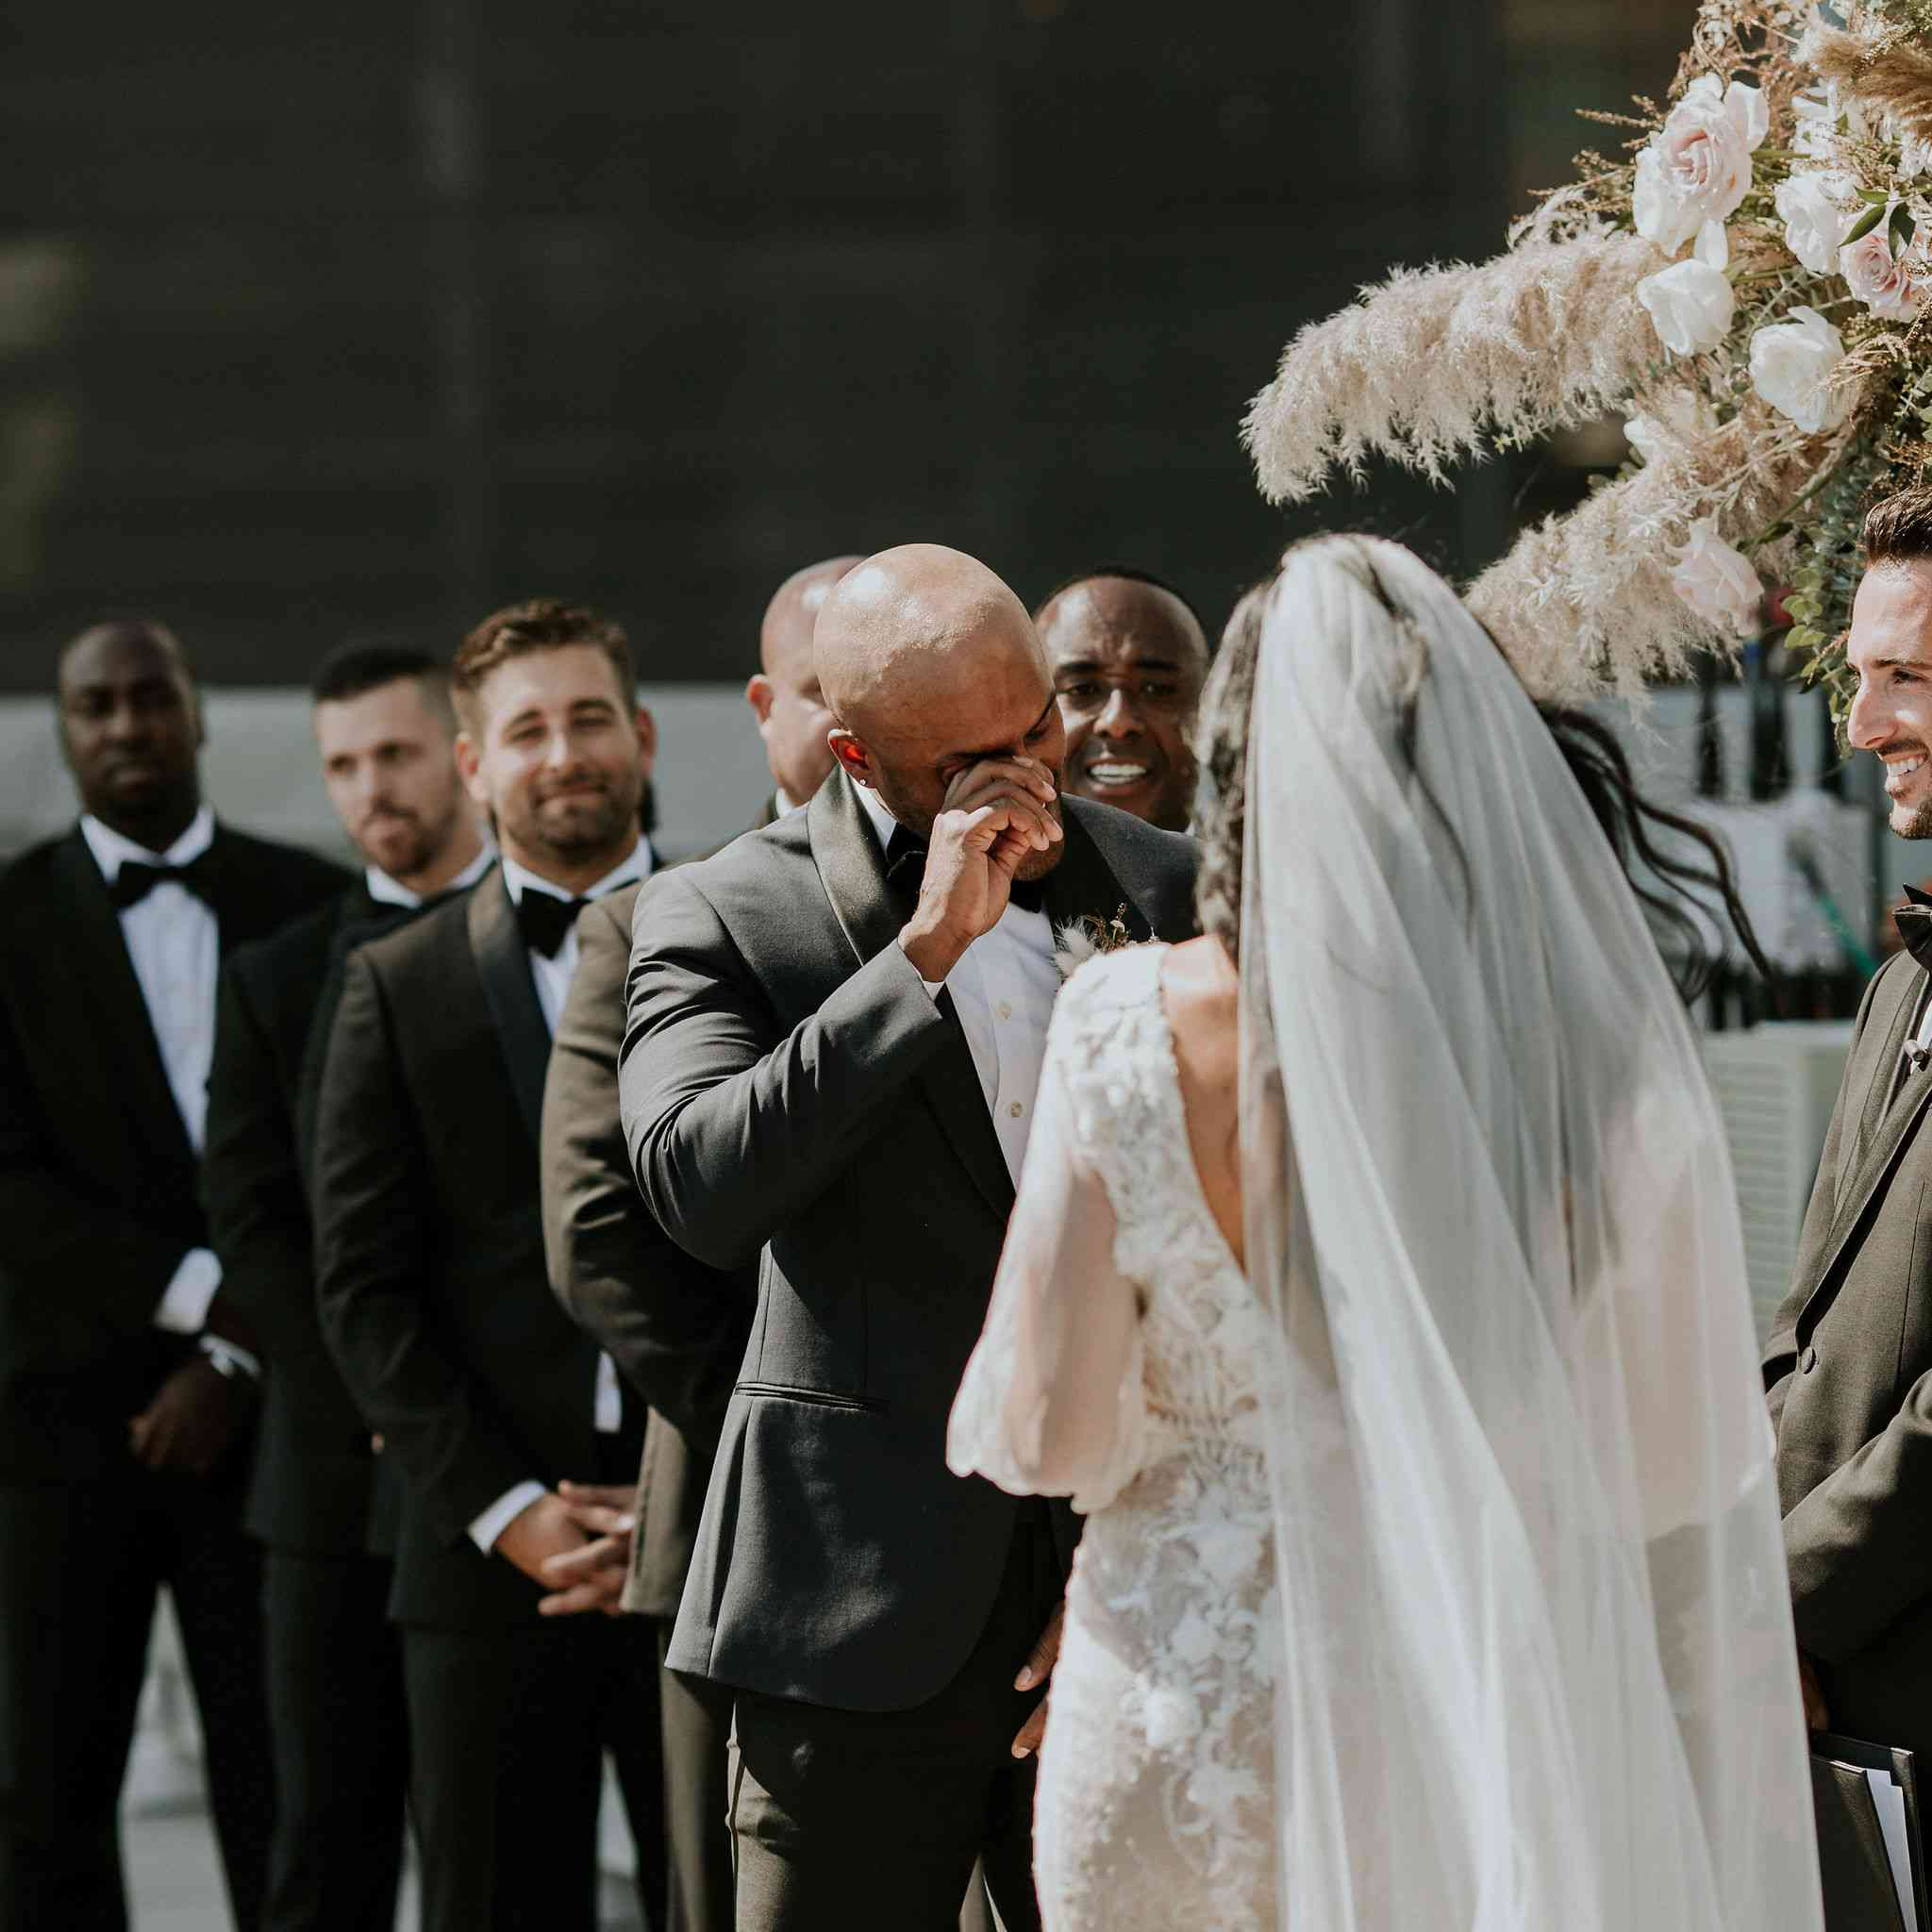 Groom wiping tears at wedding ceremony altar